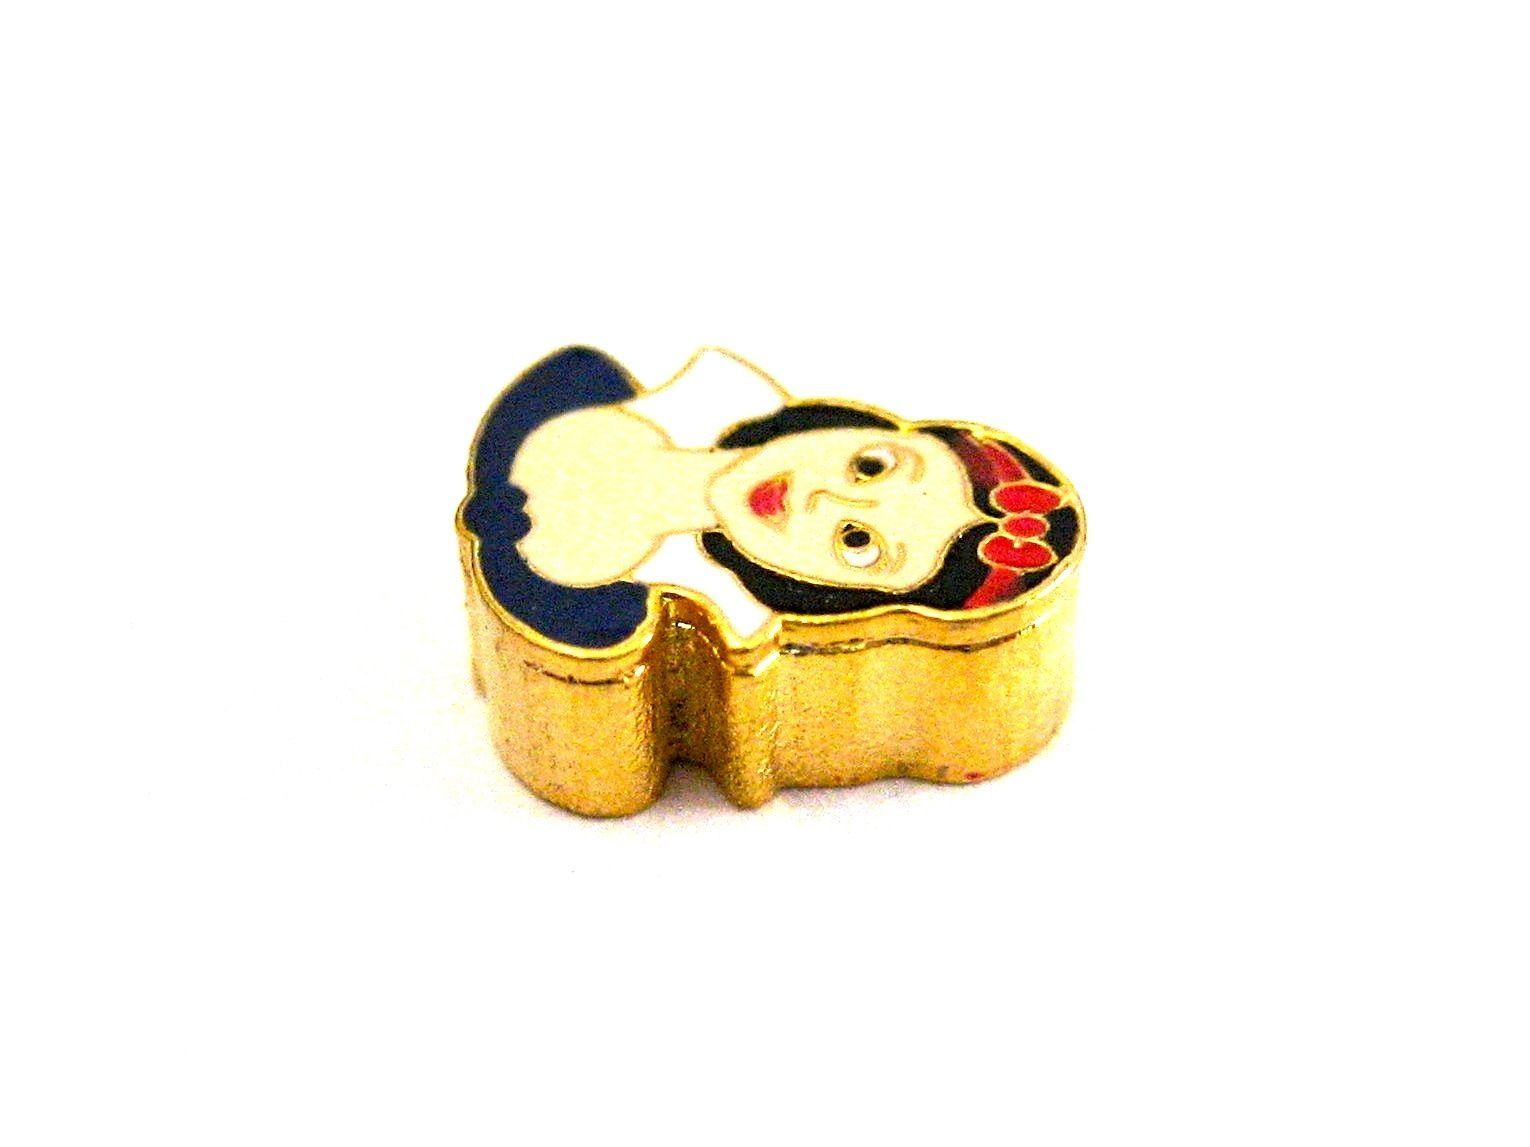 BRACCIALE DISNEY PRINCESS SNOW WHITE HEAD STAINLESS STEEL GOLD PLATED CHARM